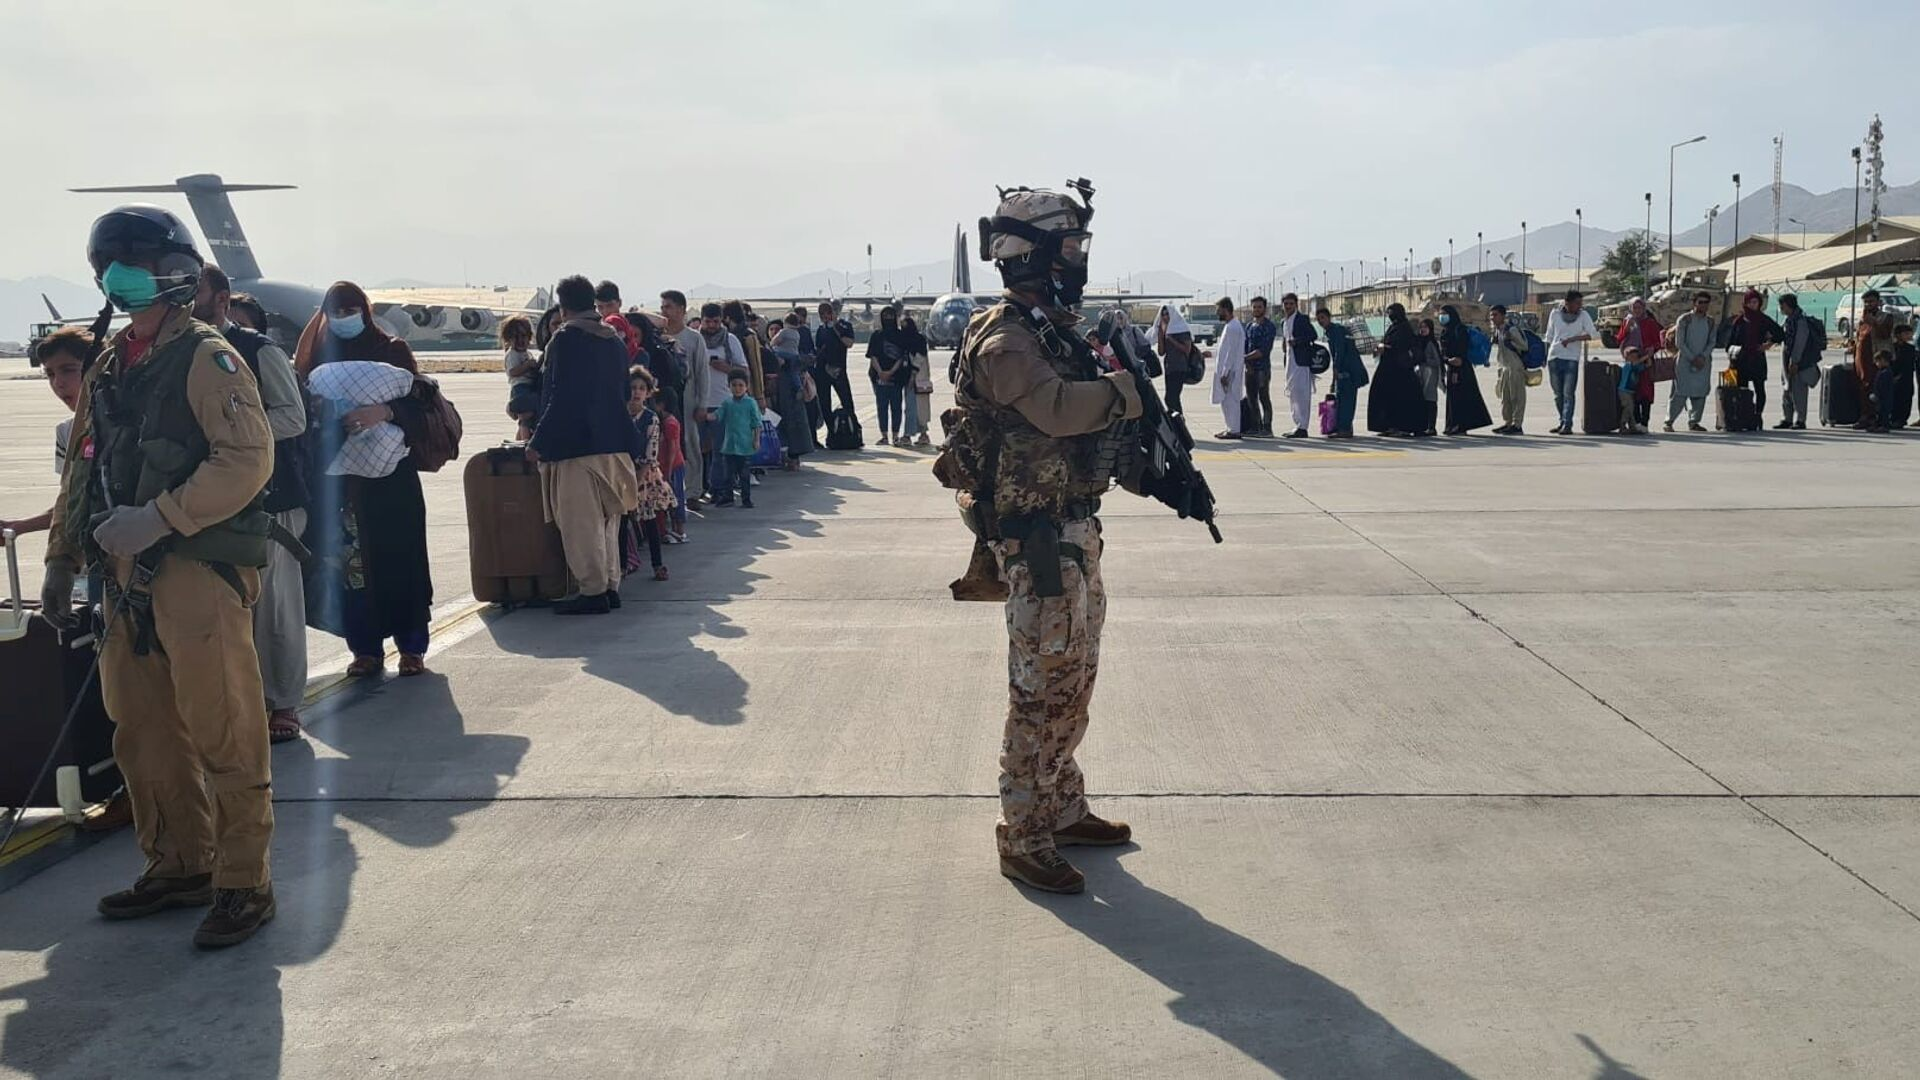 Afghan evacuees queue before boarding Italy's military aircraft C130J during evacuation at Kabul's airport, Afghanistan, August 22, 2021 - Sputnik International, 1920, 25.09.2021